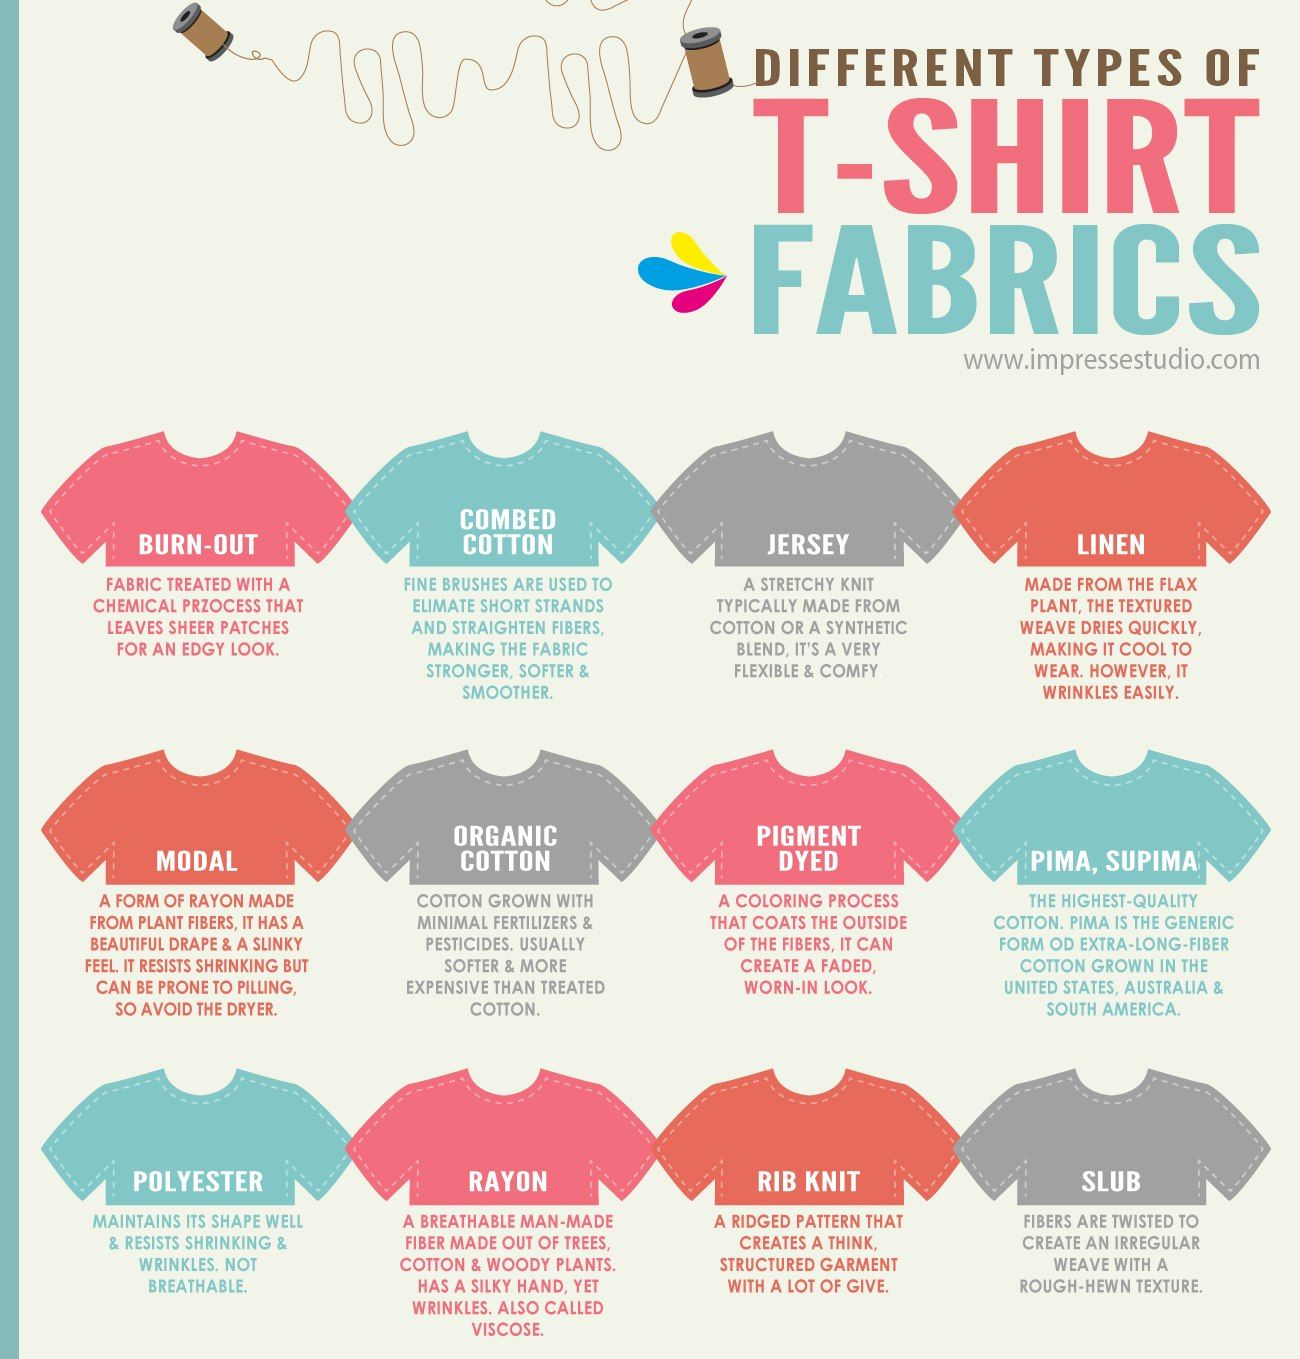 Non essenziale Luminance tumulo  Design Your Own T-Shirts Online - Impressé | Types of t shirts, Knitting  girls, Fabric